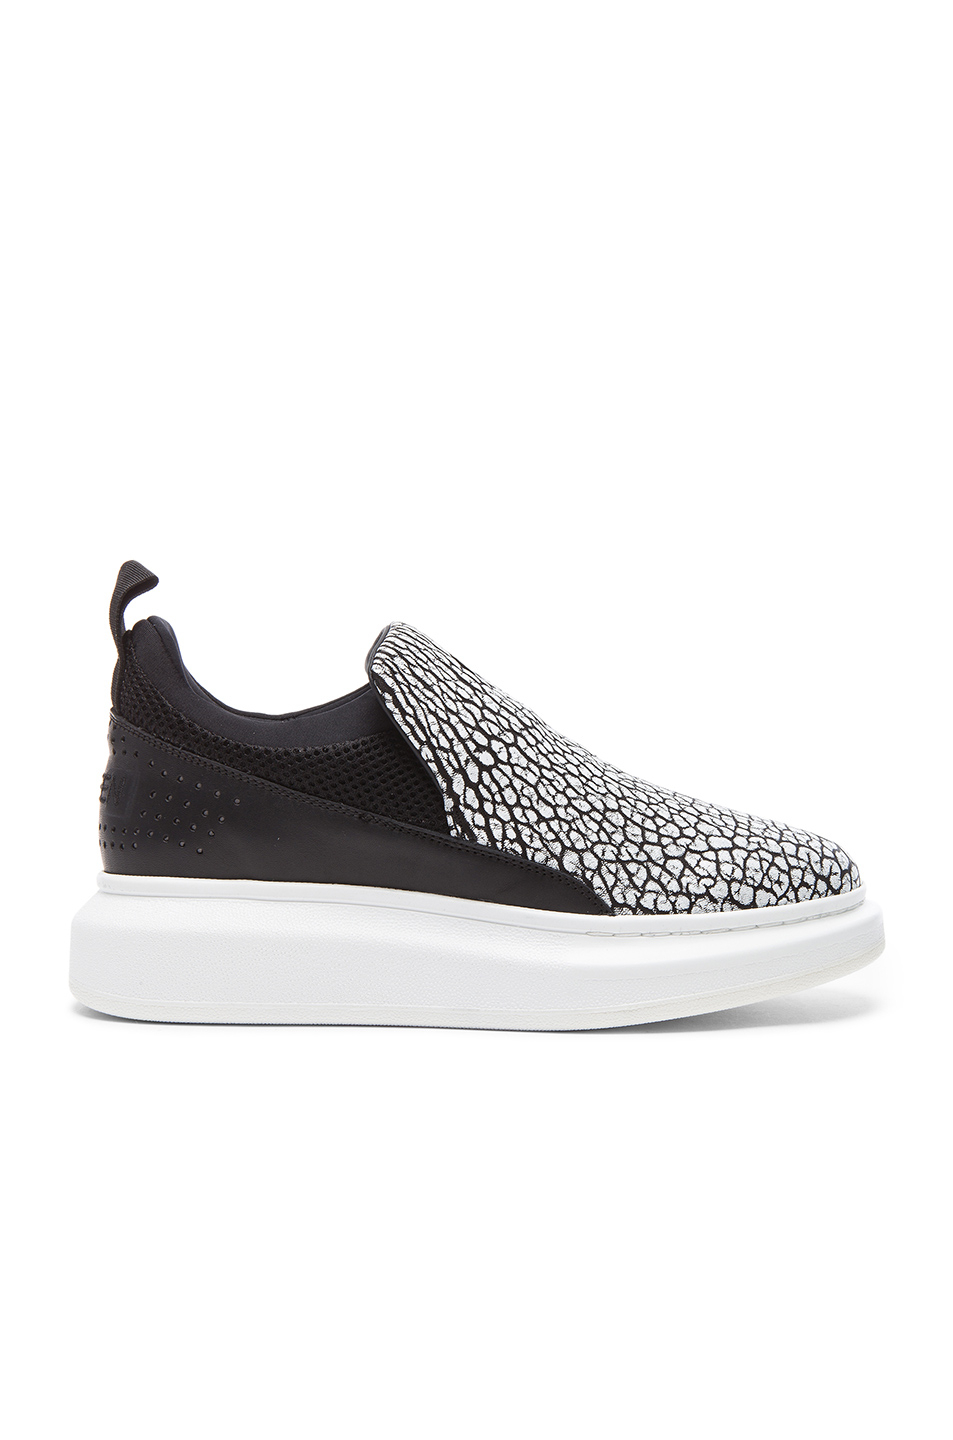 Alexander Mcqueen Sneakers Men